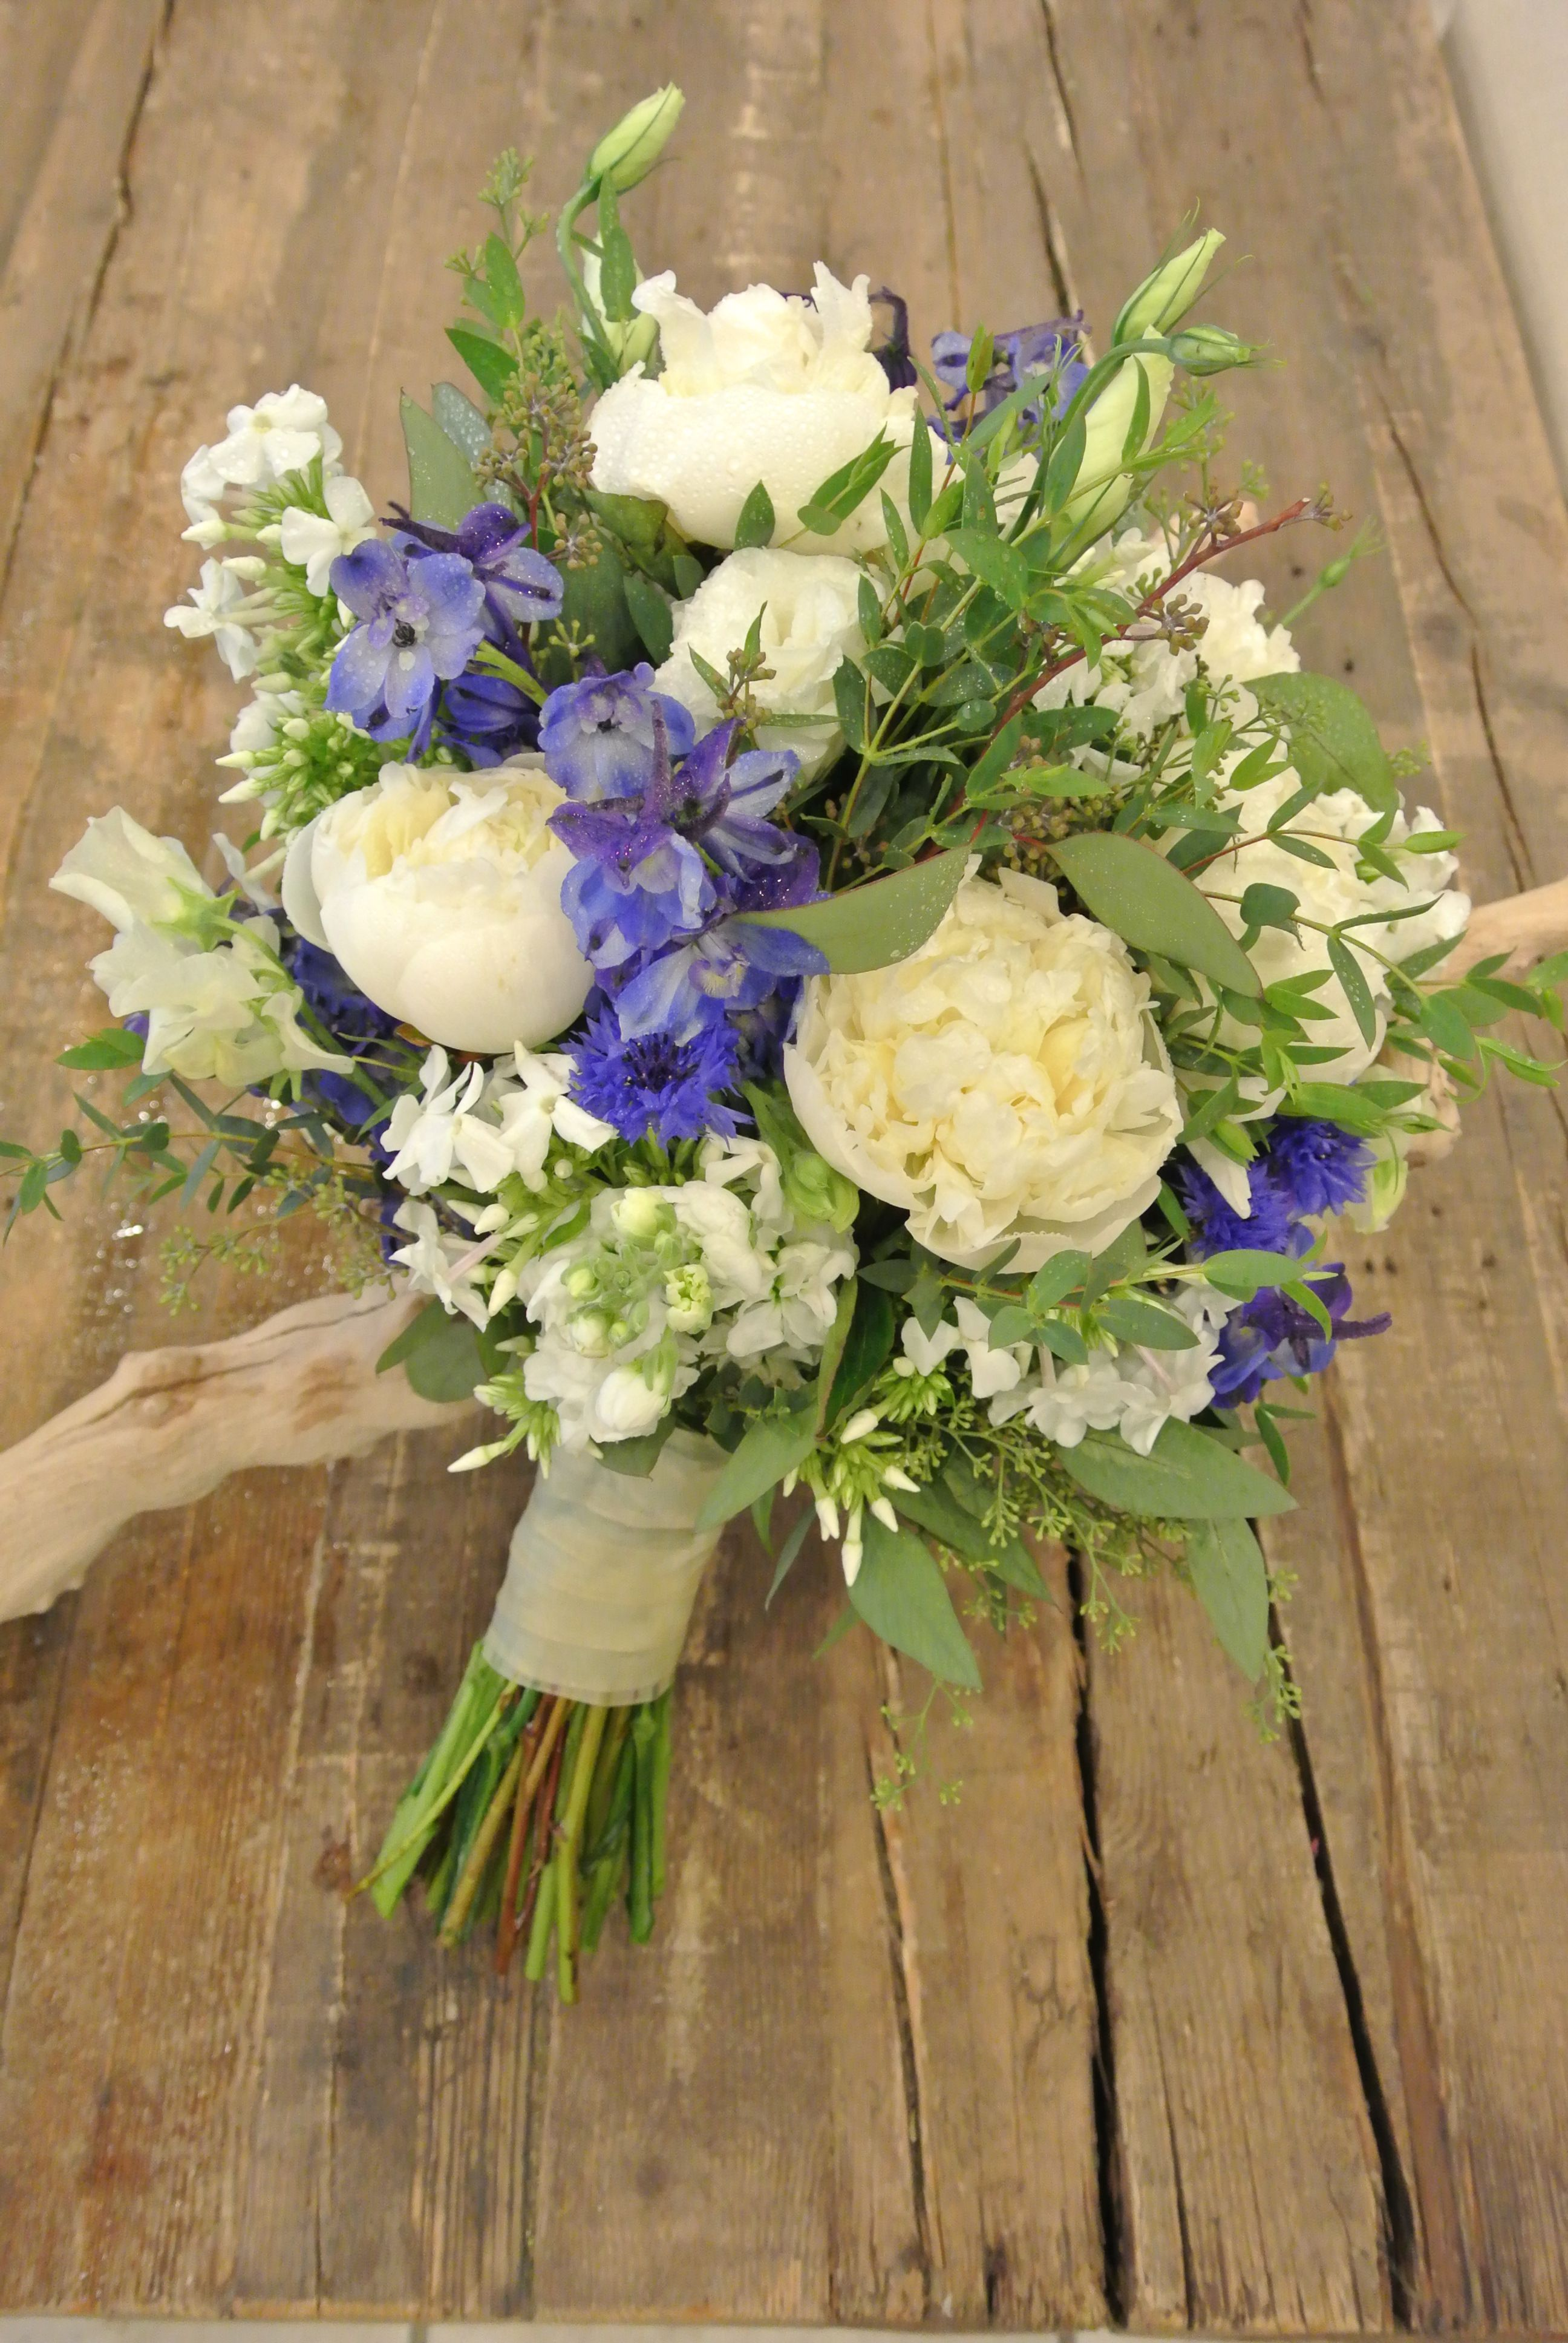 Bridal Bouquet With Blue Delphiniums Peonies Stocks Phlox Sweetpeas Lisianthus And Eucalyptus Flower Bouquet Wedding Blue Wedding Flowers Wedding Bouquets